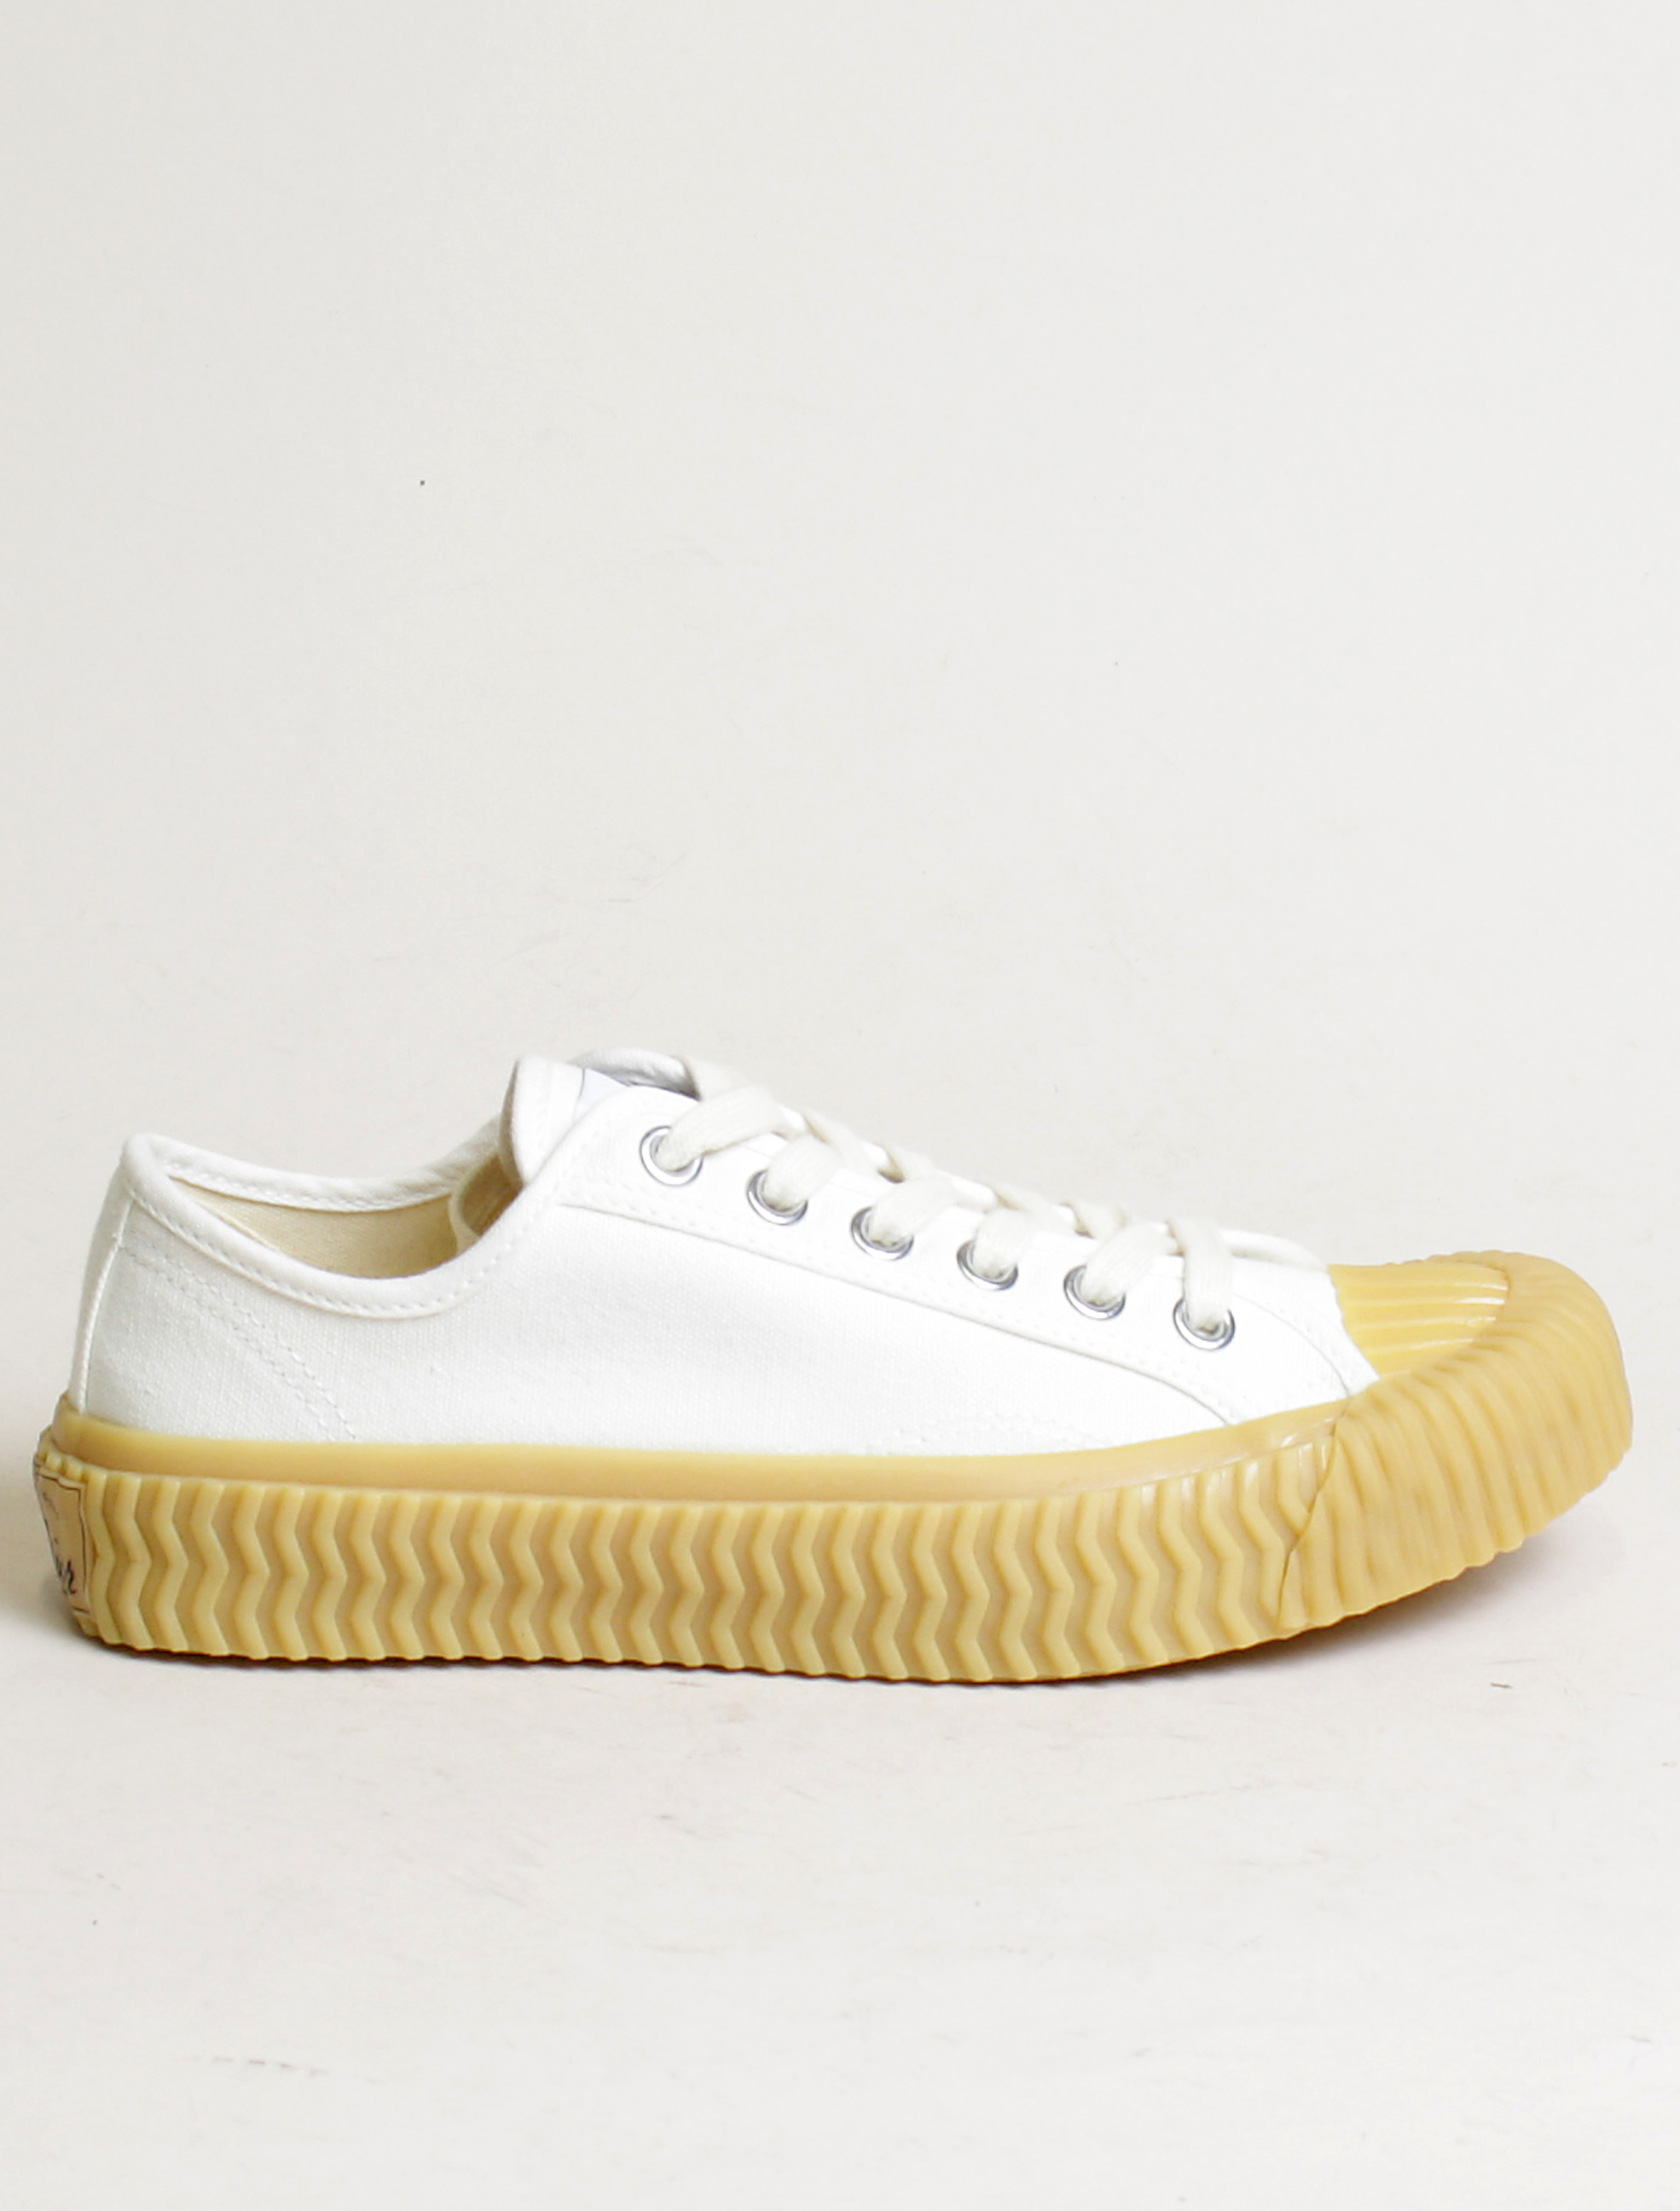 0fcd615e4364 Excelsior sneakers Bolt Lo Shoes Off White rubber sole steam white